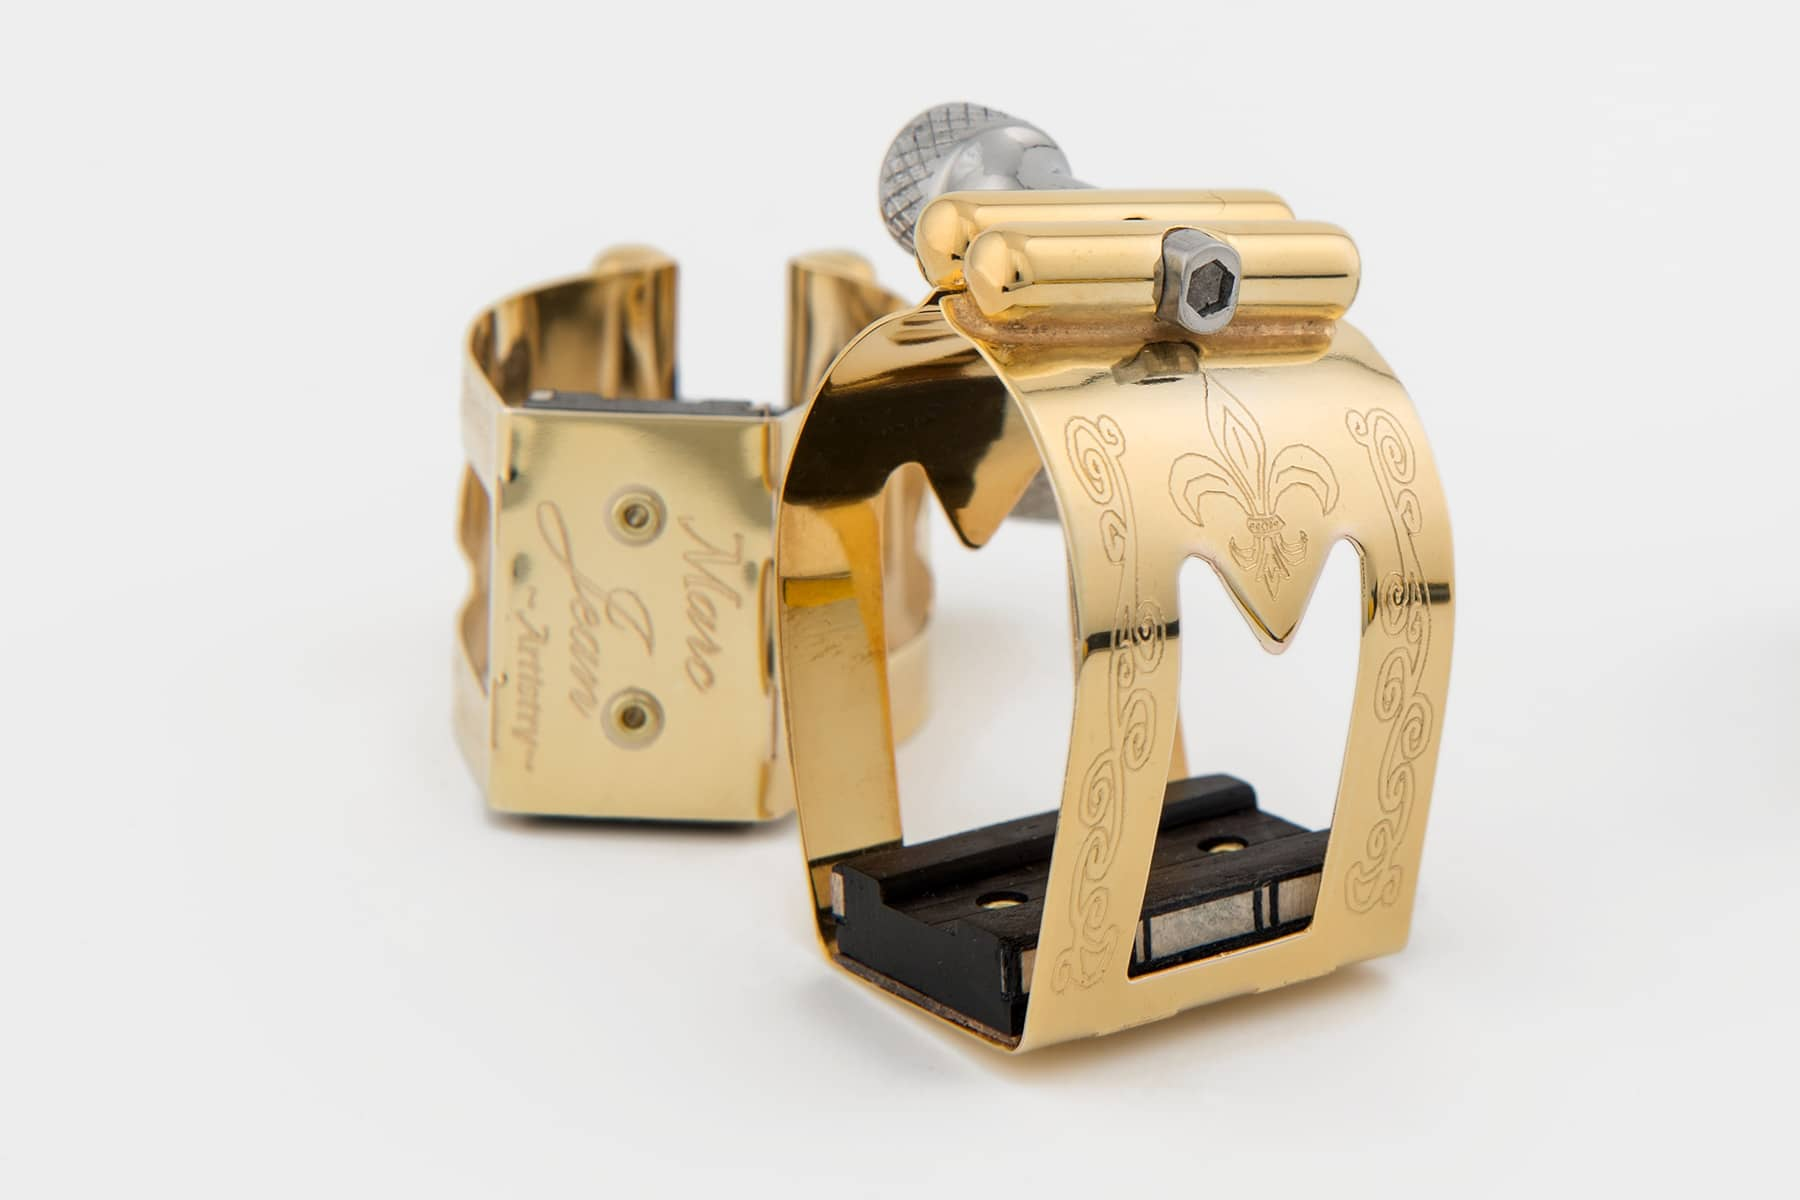 Marc Jean Saxophone Ligature II Model 700 Review